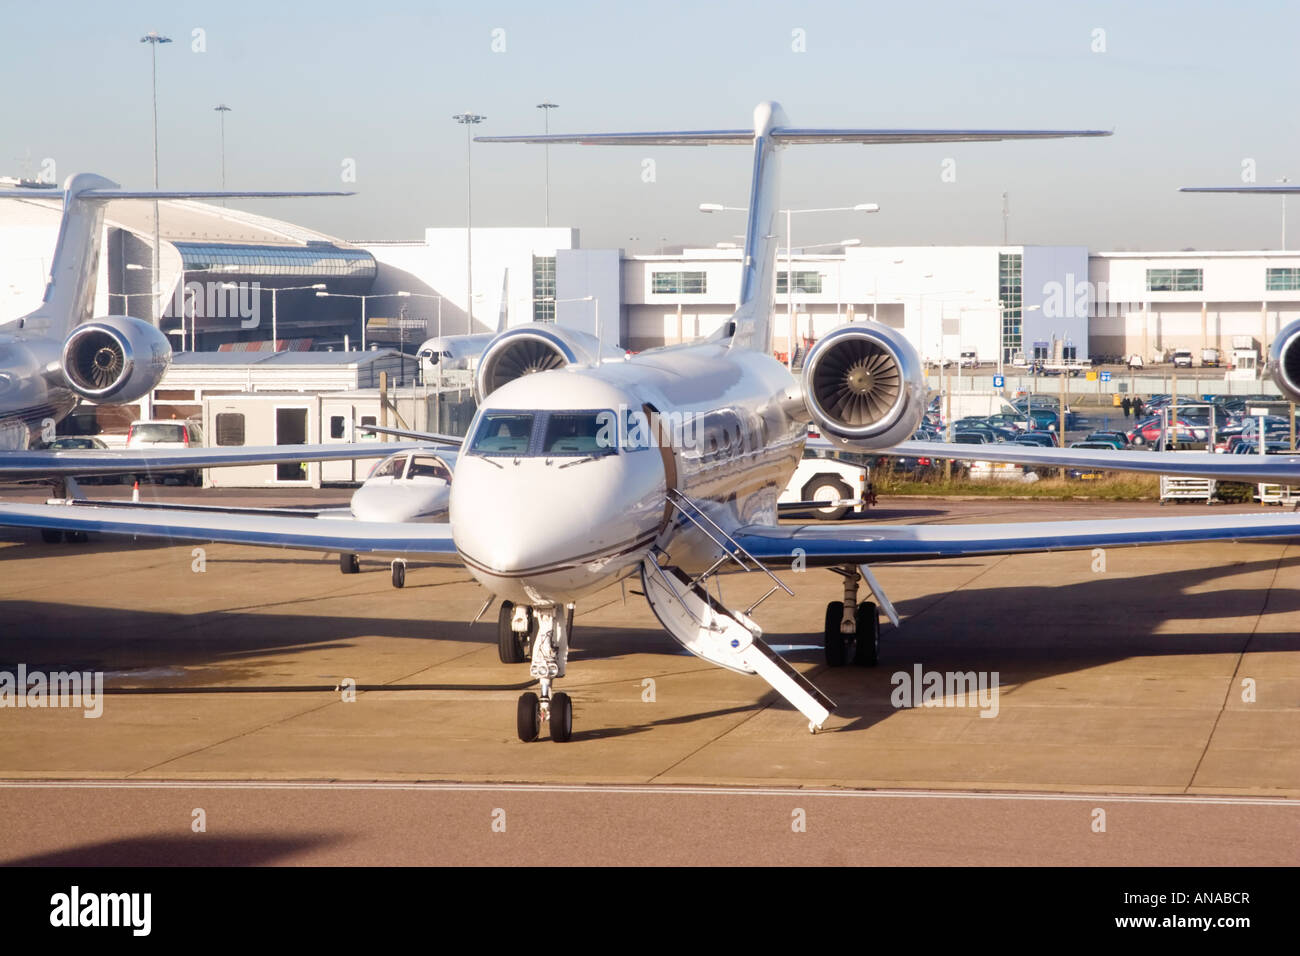 Private Jet At London Luton Airport Stock Photo Royalty Free Image 15464326